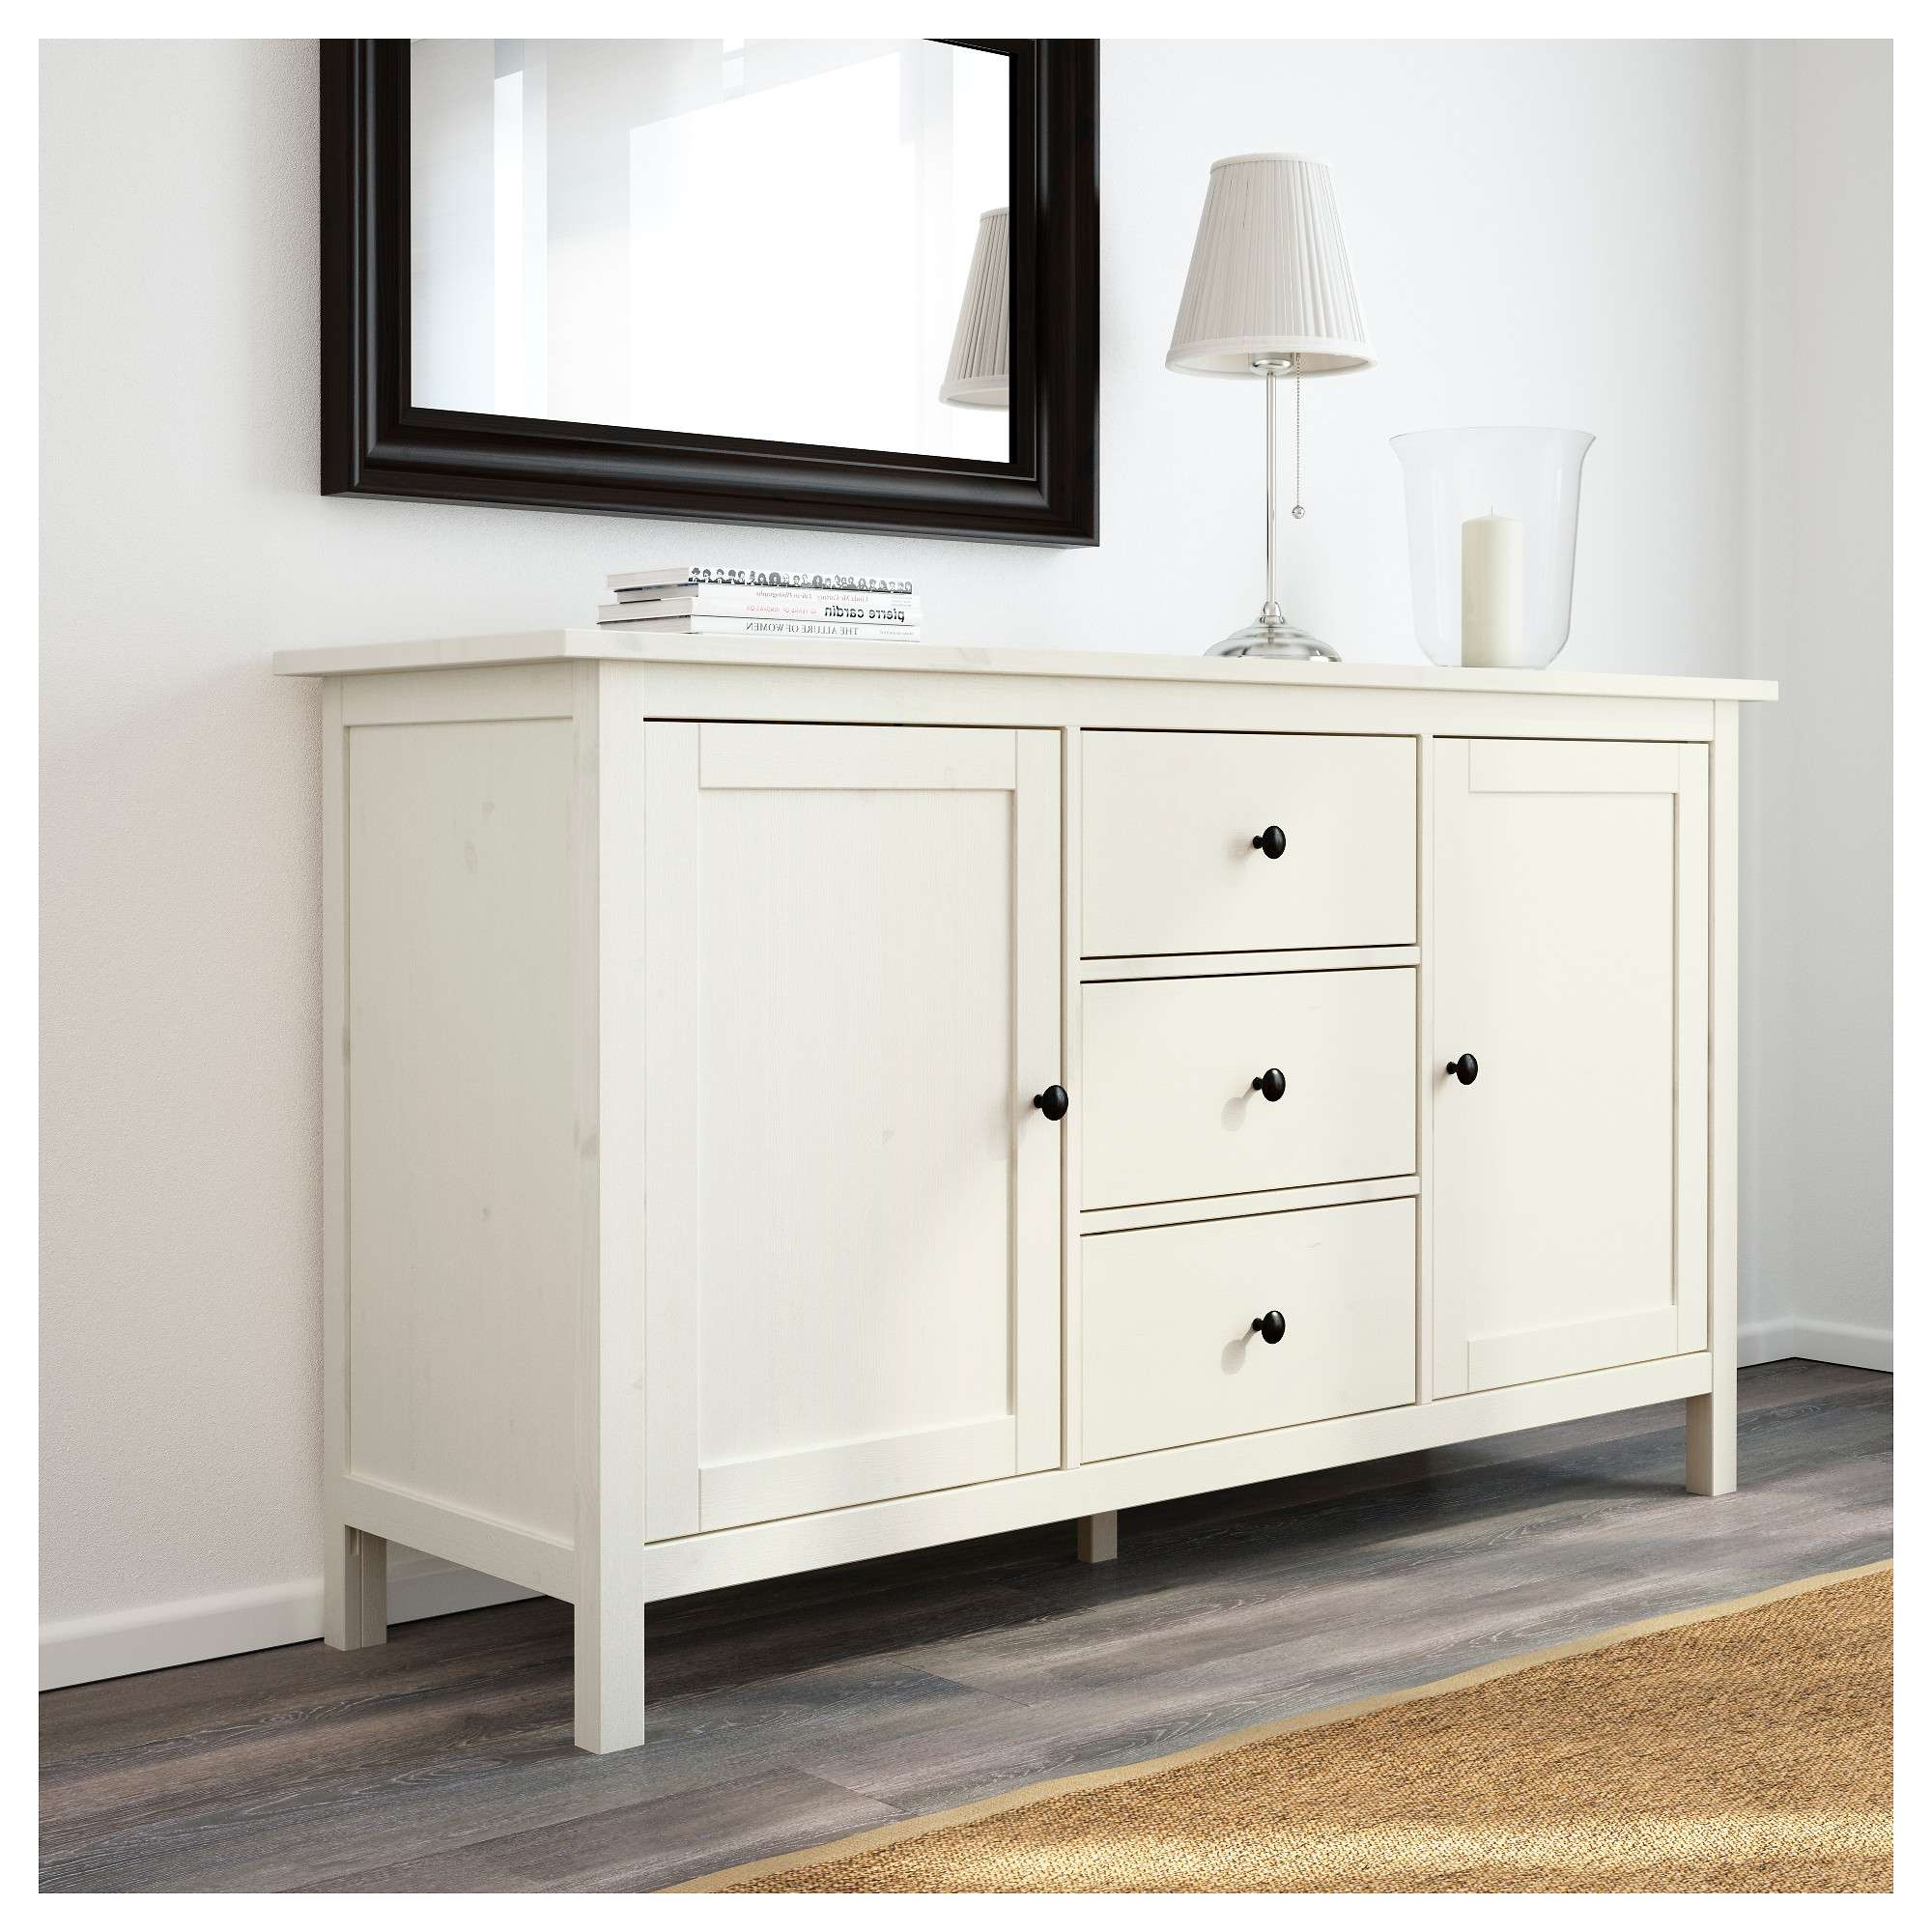 Hemnes Sideboard White Stain 157X88 Cm – Ikea Inside Sideboards Tables (View 9 of 20)